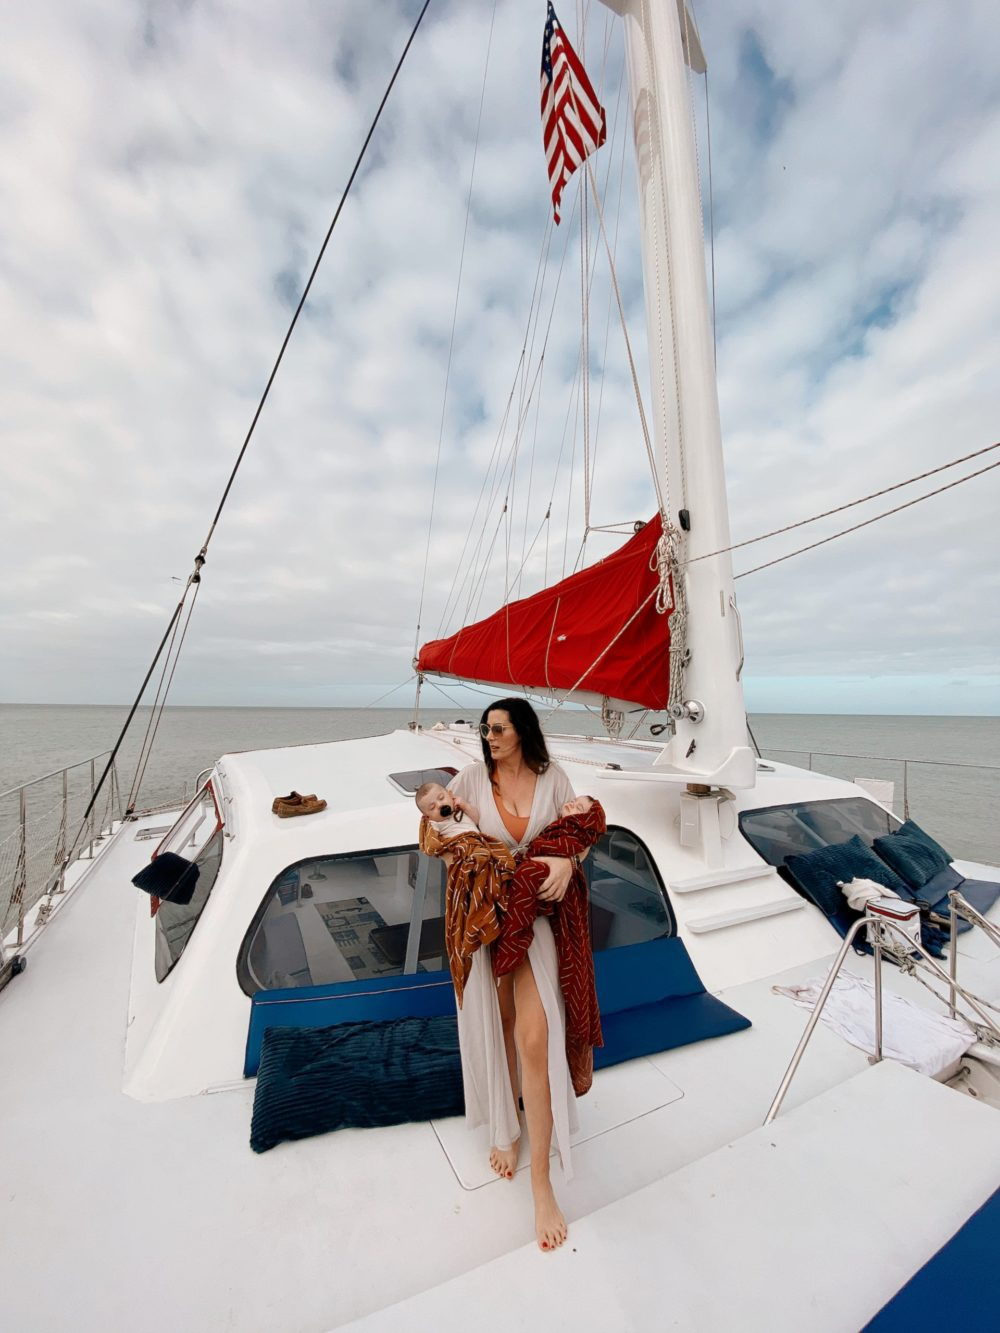 Relaxing catamaran trip with Sweet Liberty, the largest Sailing Catamaran in Southwest Florida... babies welcome! | Spectacular Things to Do in Naples FL This Weekend by popular Florida blog, Fresh Mommy Blog: image of a woman standing on a boat with her twin babies.